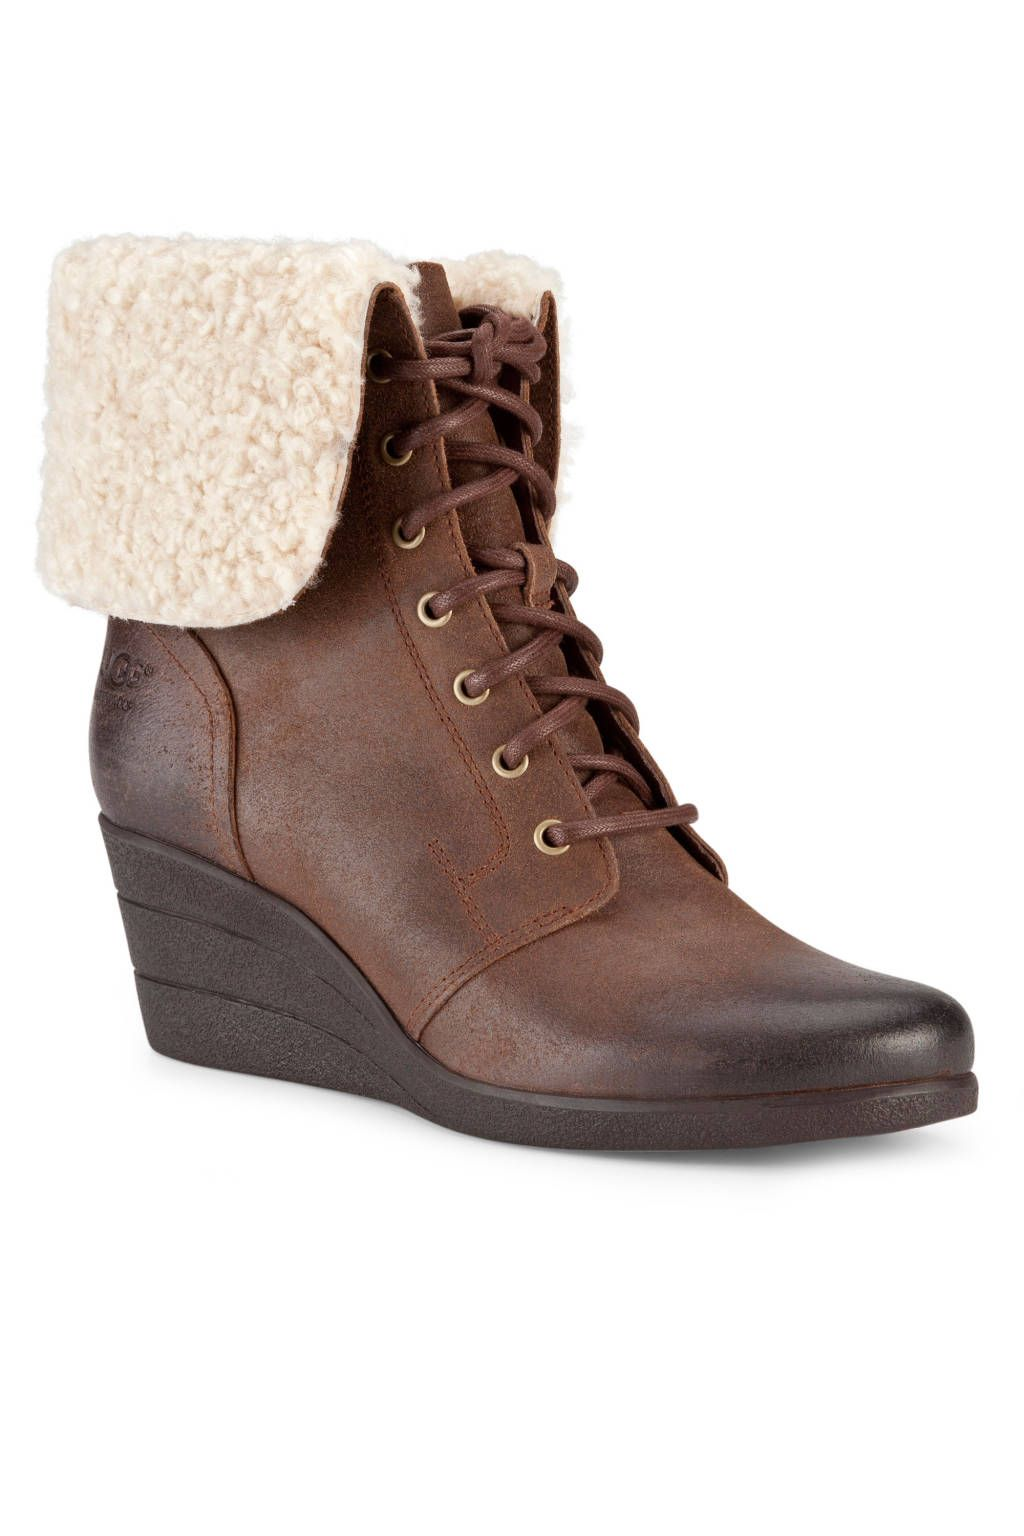 Le Meilleur 12 Chic Snow Boots You'll Actually Want To Wear Shoes Ce Mois Ci